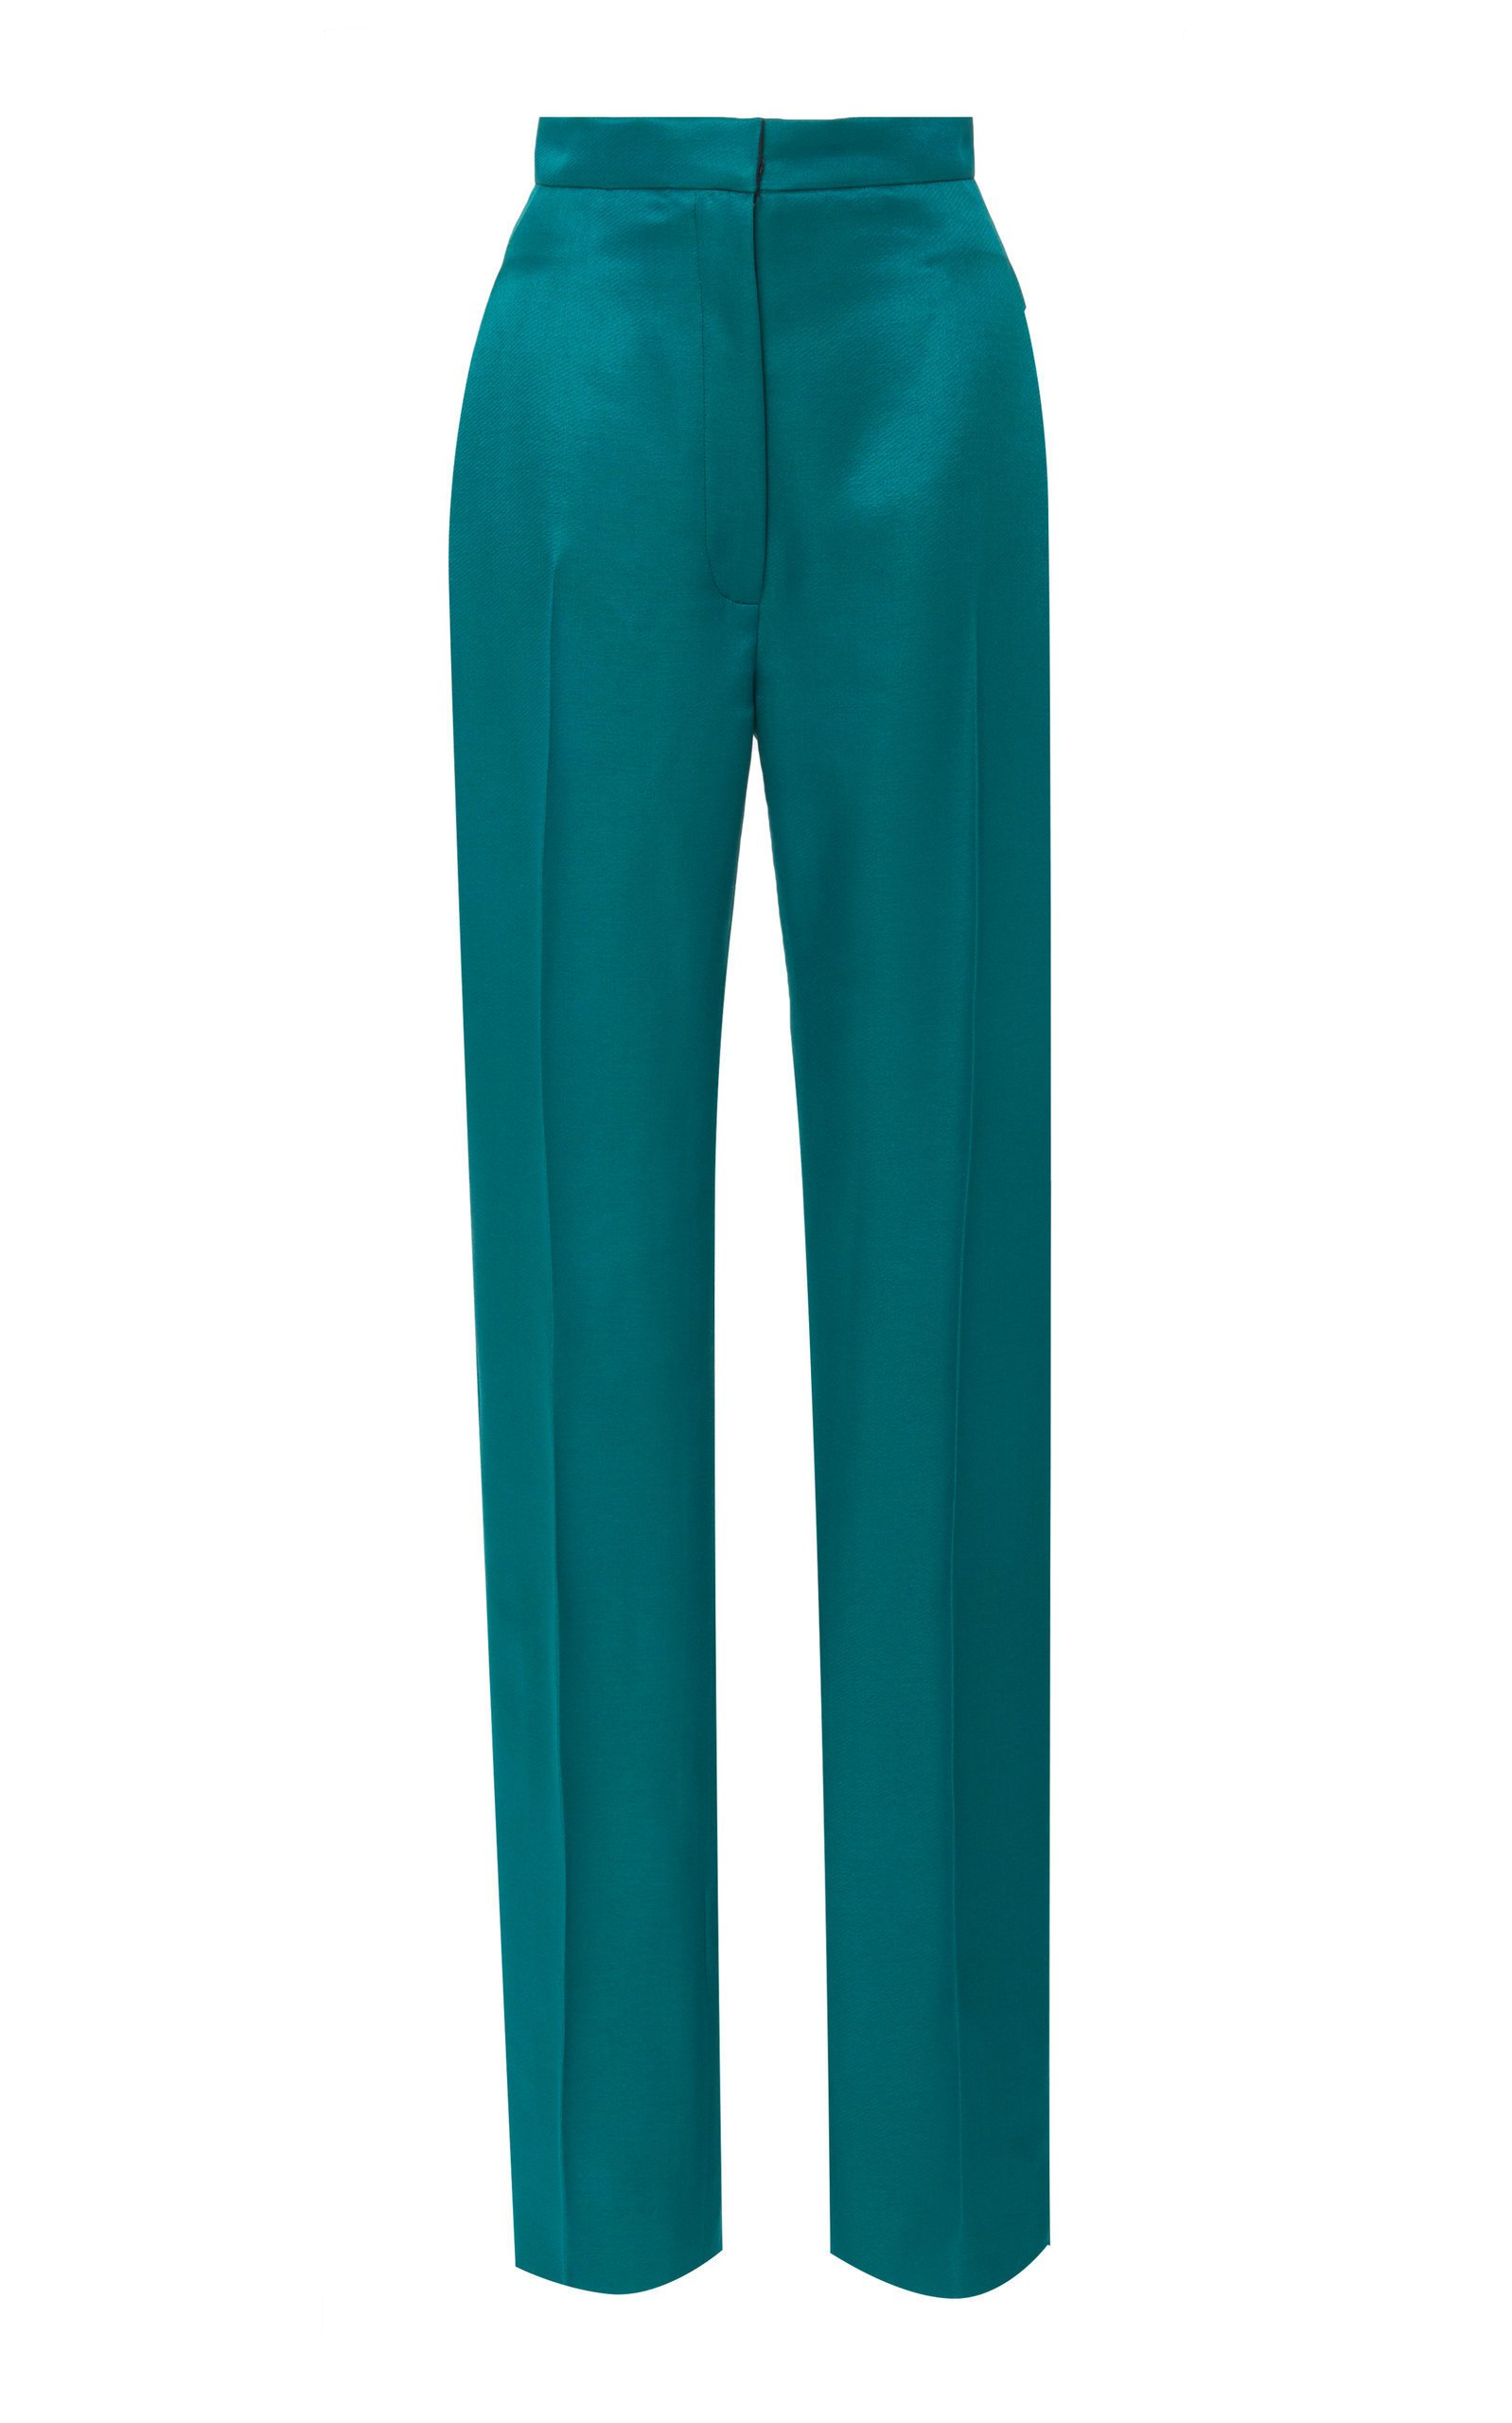 Carolina Herrera High Waisted Straight Leg Satin Suit Pants Size: 0